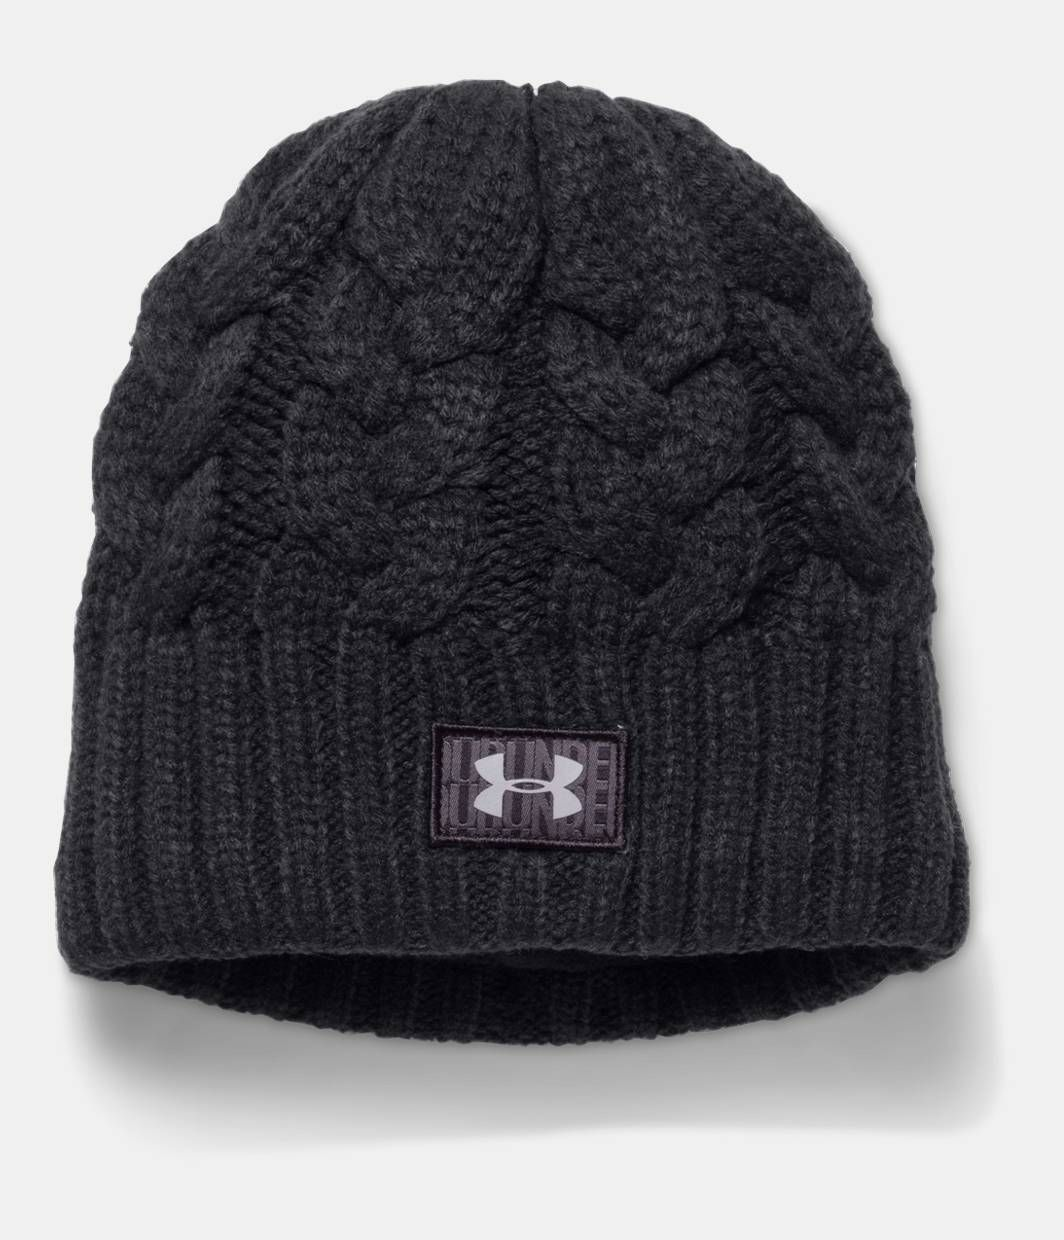 42985d5eab0 Shop Under Armour for Women s UA Around Town Beanie in our Womens Beanies  department. Free shipping is available in US.